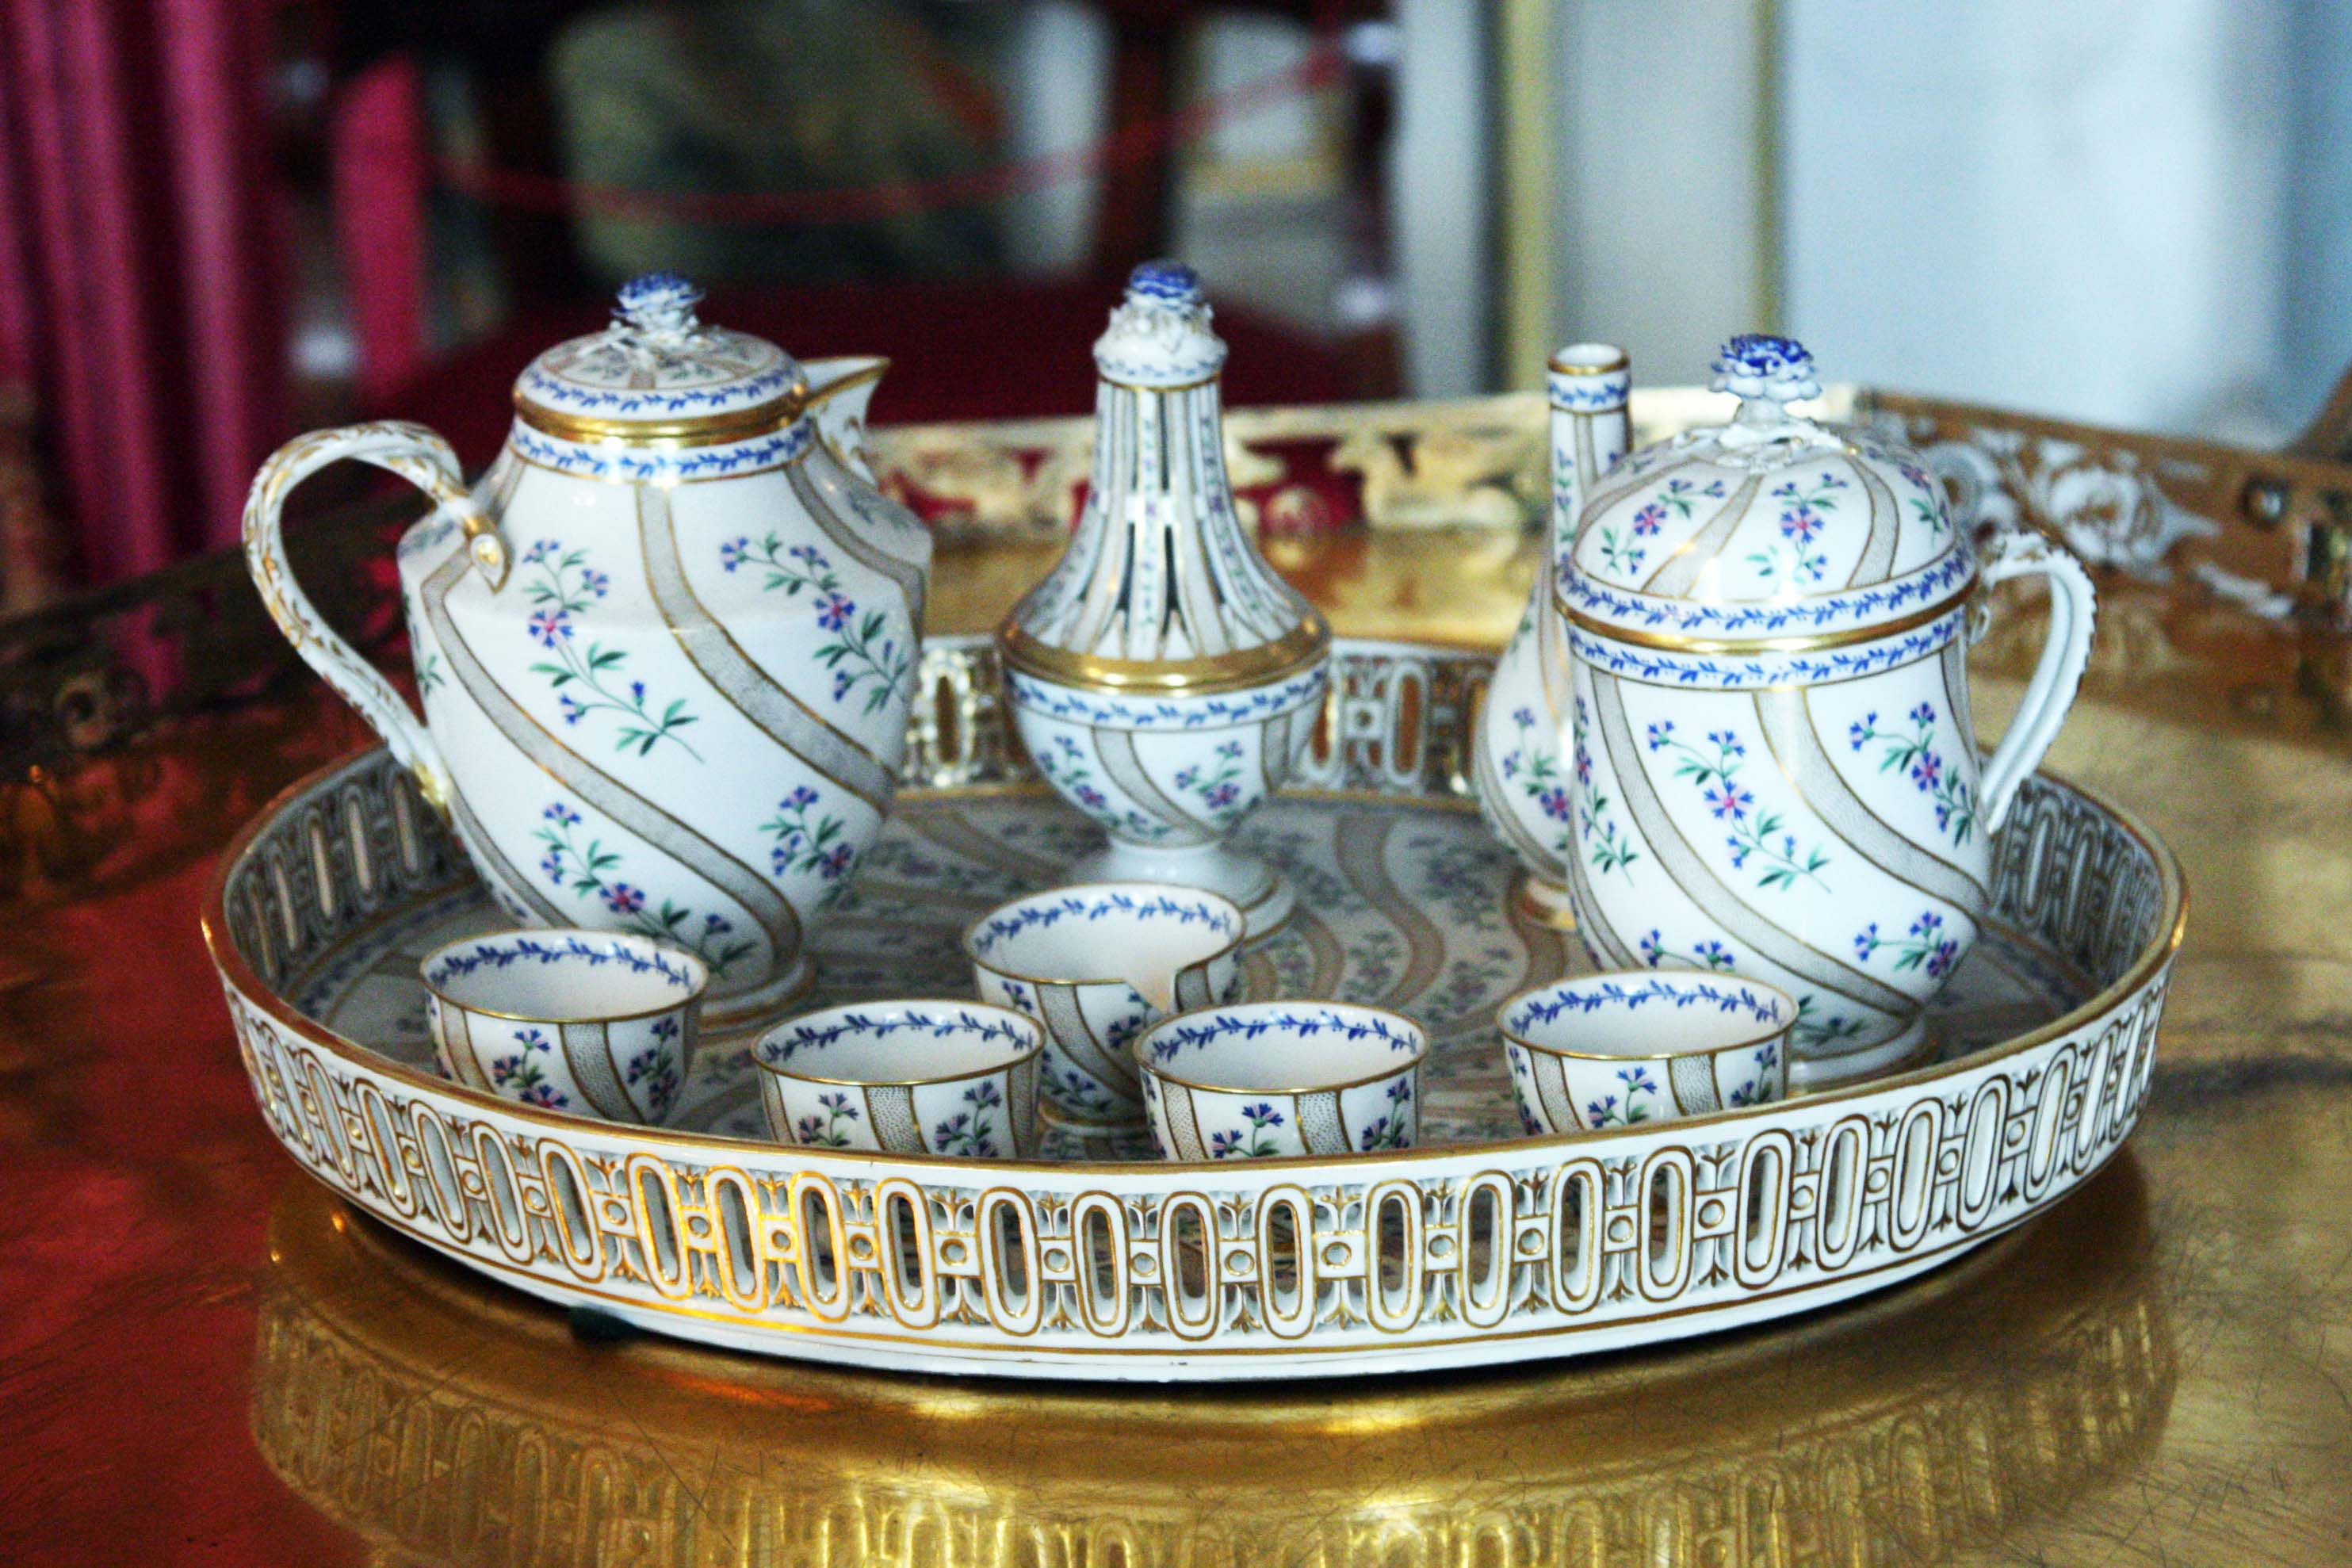 Ludwigsburg Residential Palace, Meissner porcelain belonging to Queen Charlotte Mathilde, 1810–1820. Image: Wikimedia Commons, Andys https://commons.wikimedia.org/wiki/Category:Inventory_of_Ludwigsburg_Palace?uselang=de#/media/File:RSLB_MeisnerPorzelan.jpg